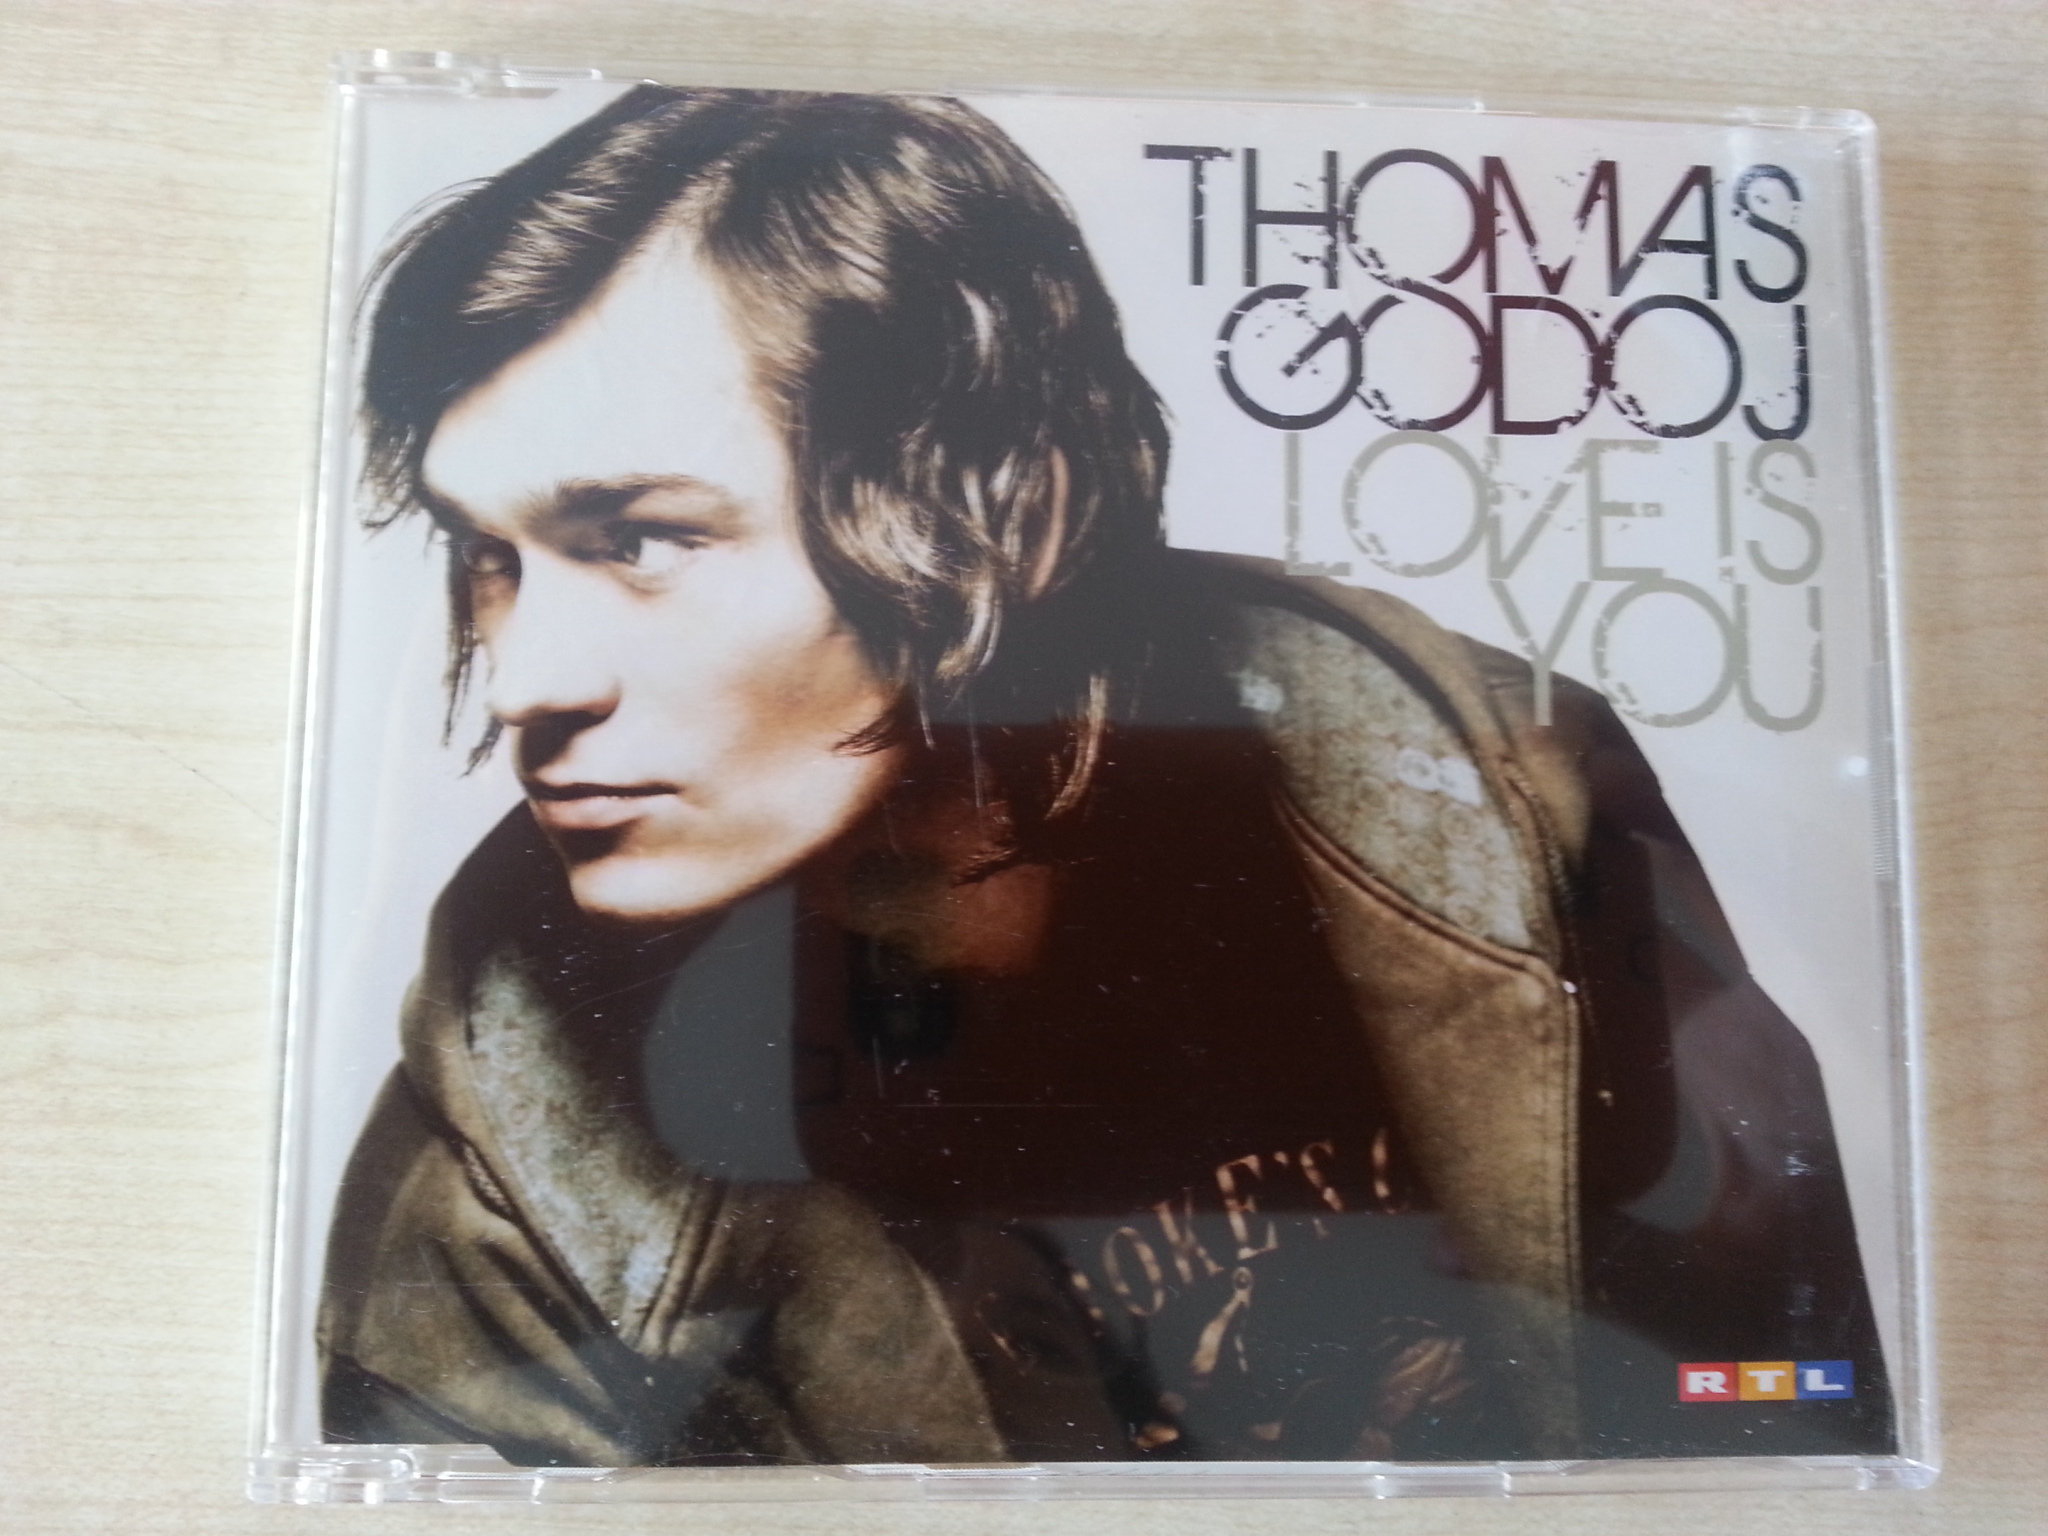 CD: Thomas Godoj - Love is you kostenlos